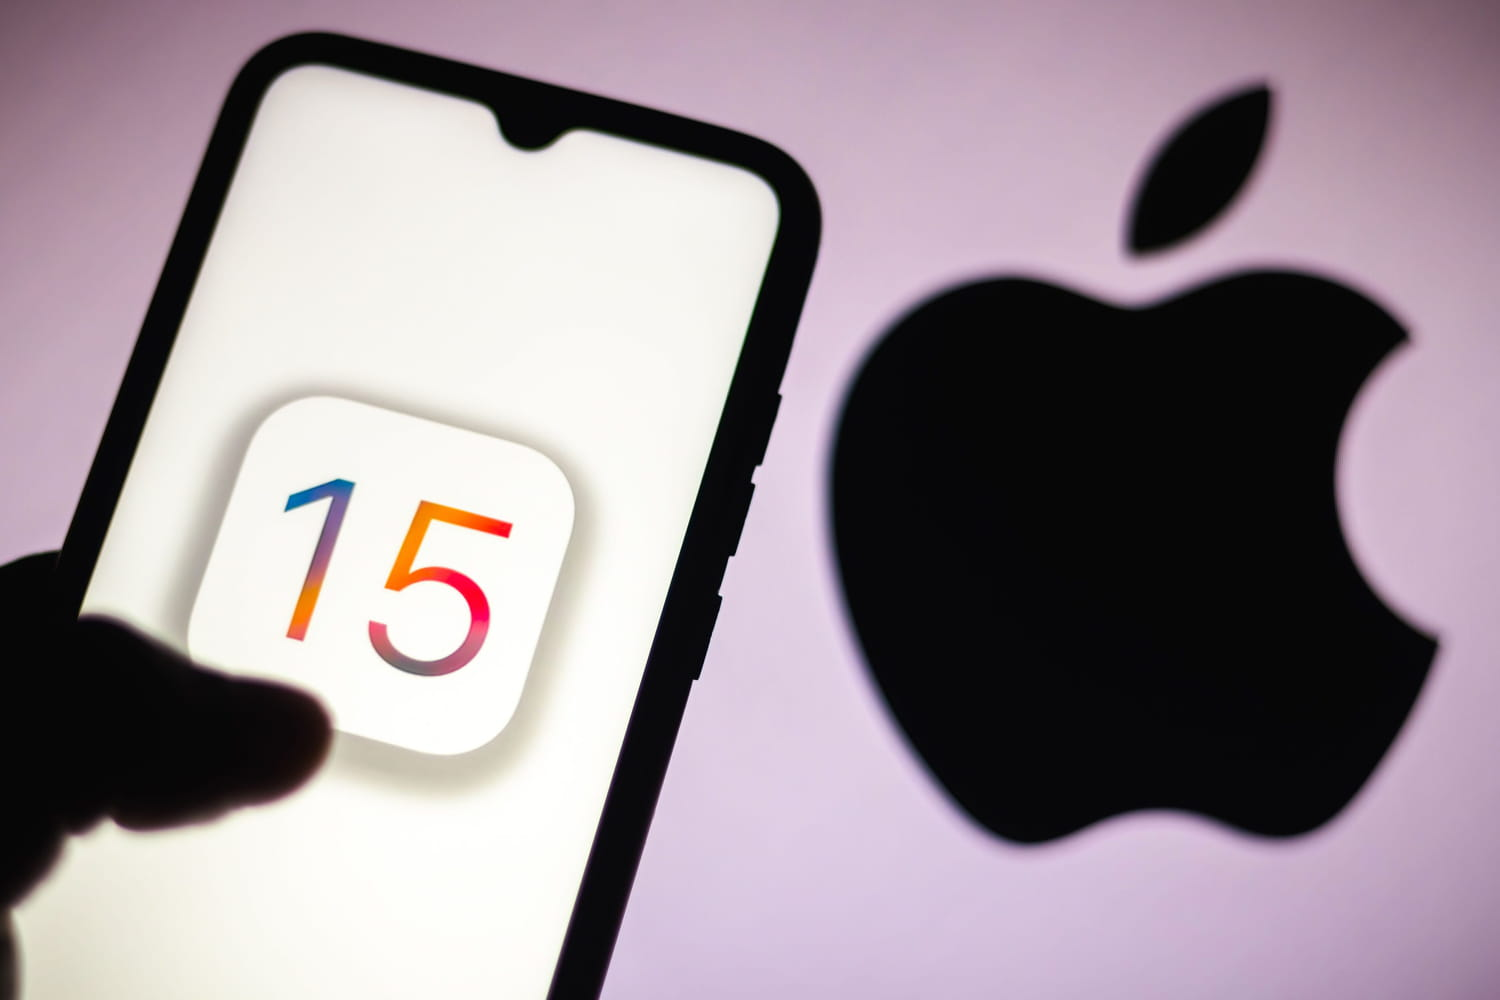 iOS 15: launch time, beta, compatible devices ... let's take stock